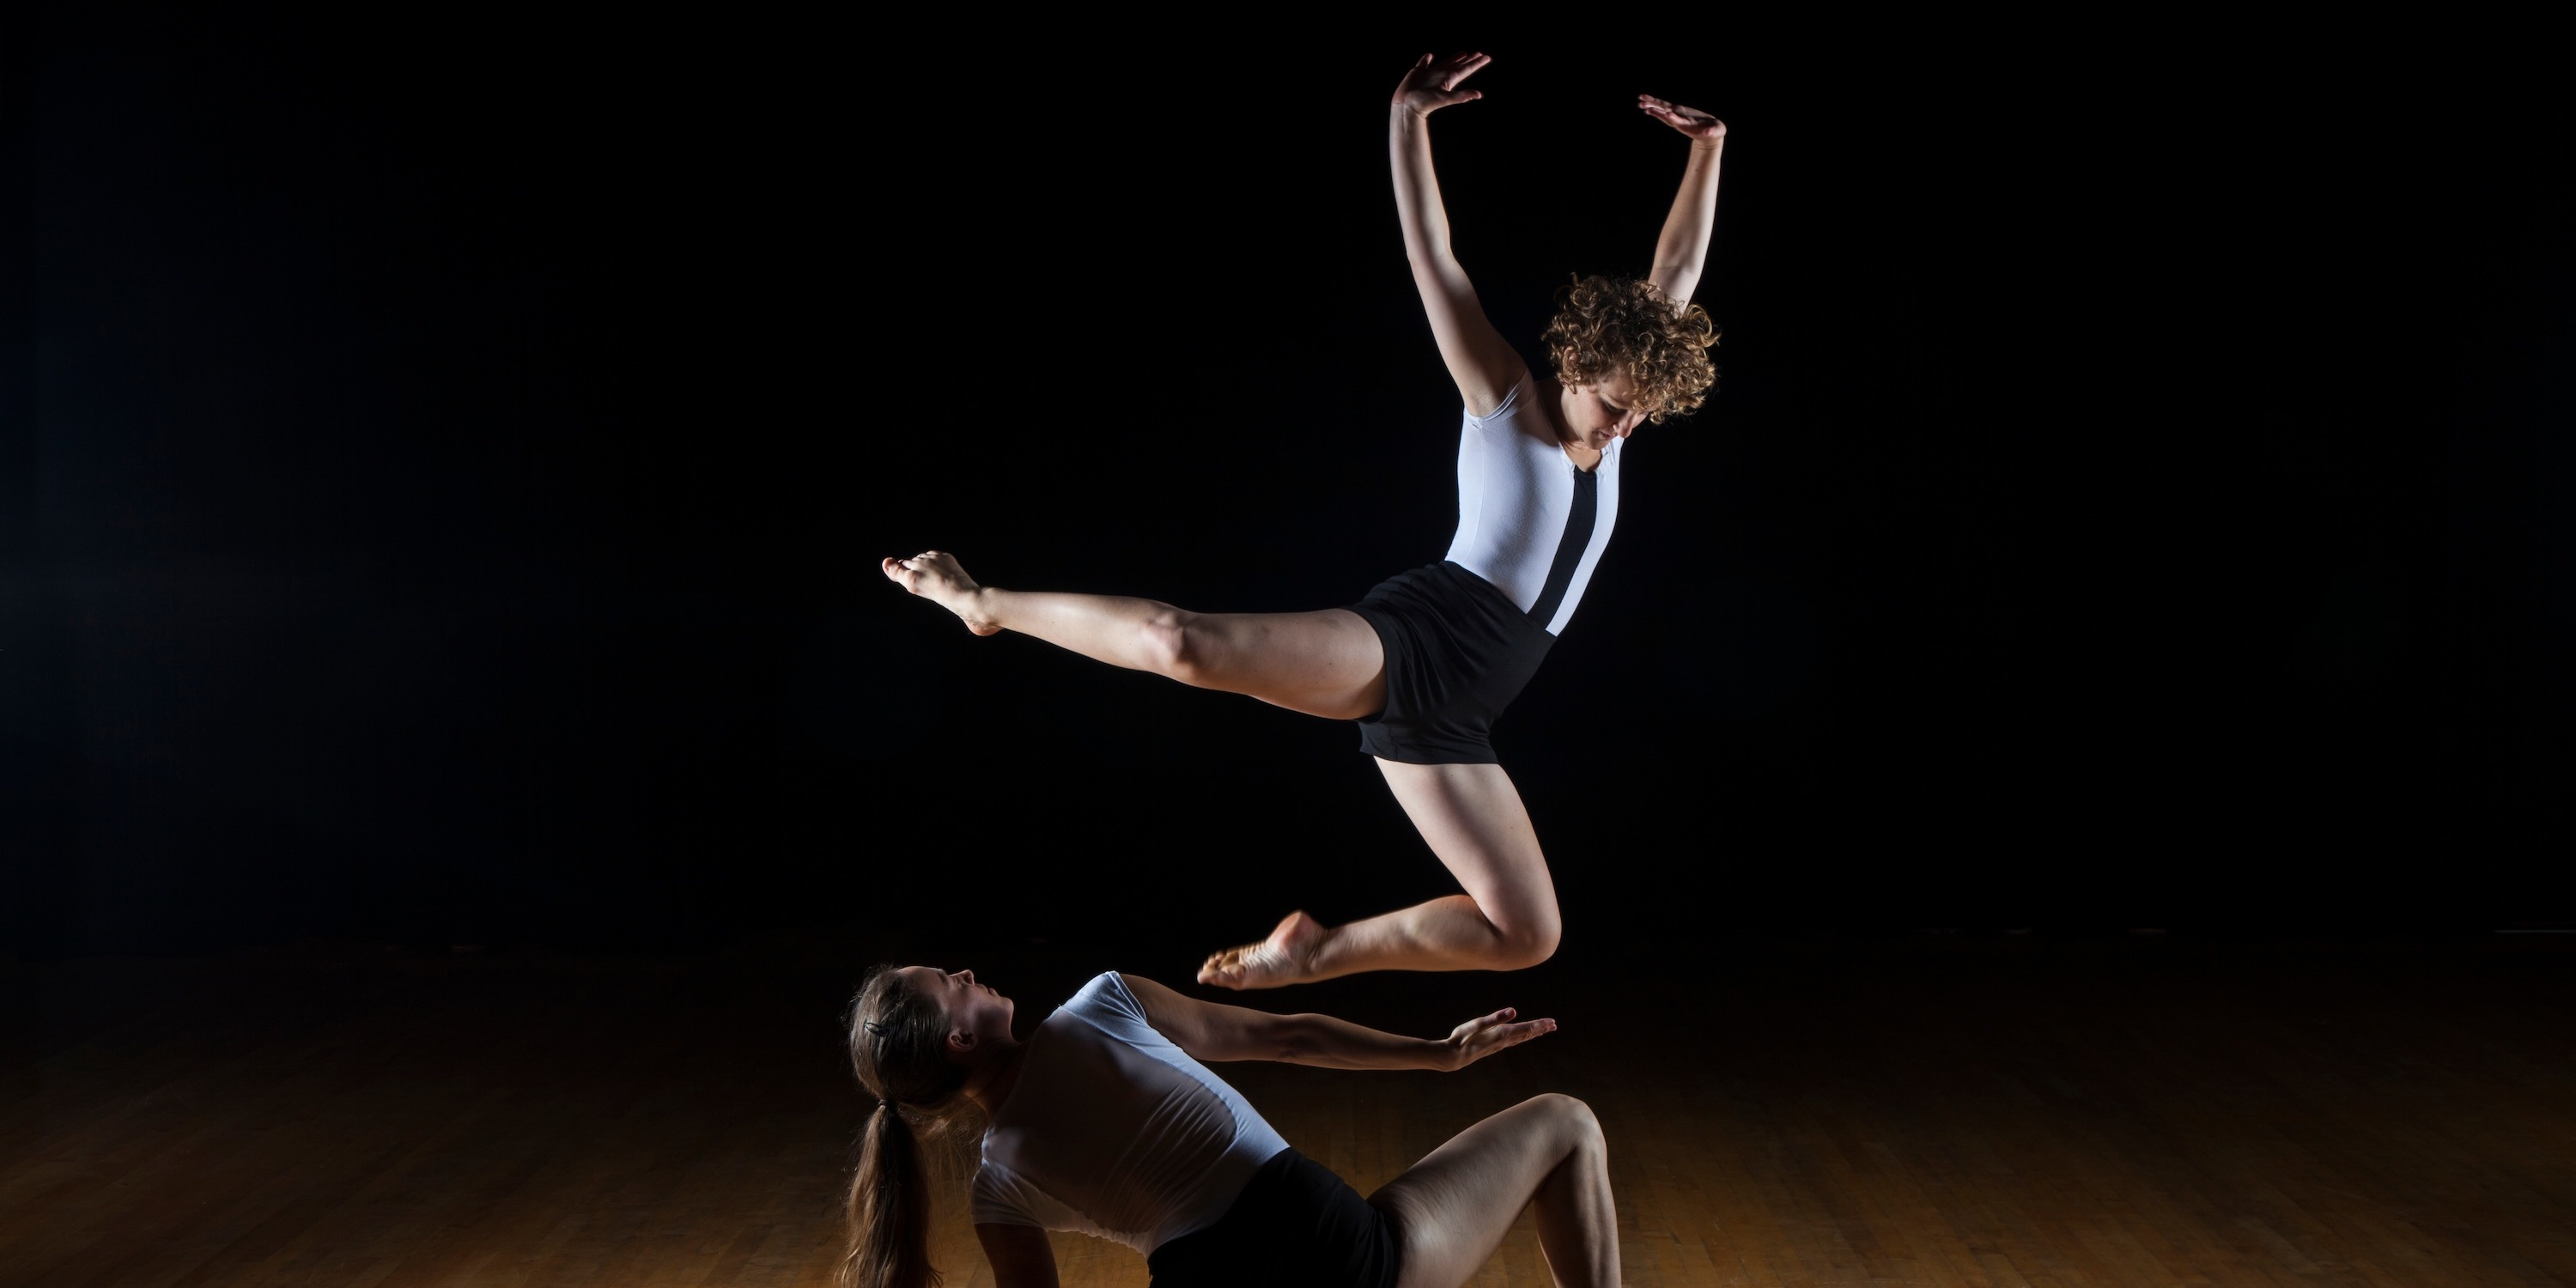 Dancers performing a dramatic piece on stage